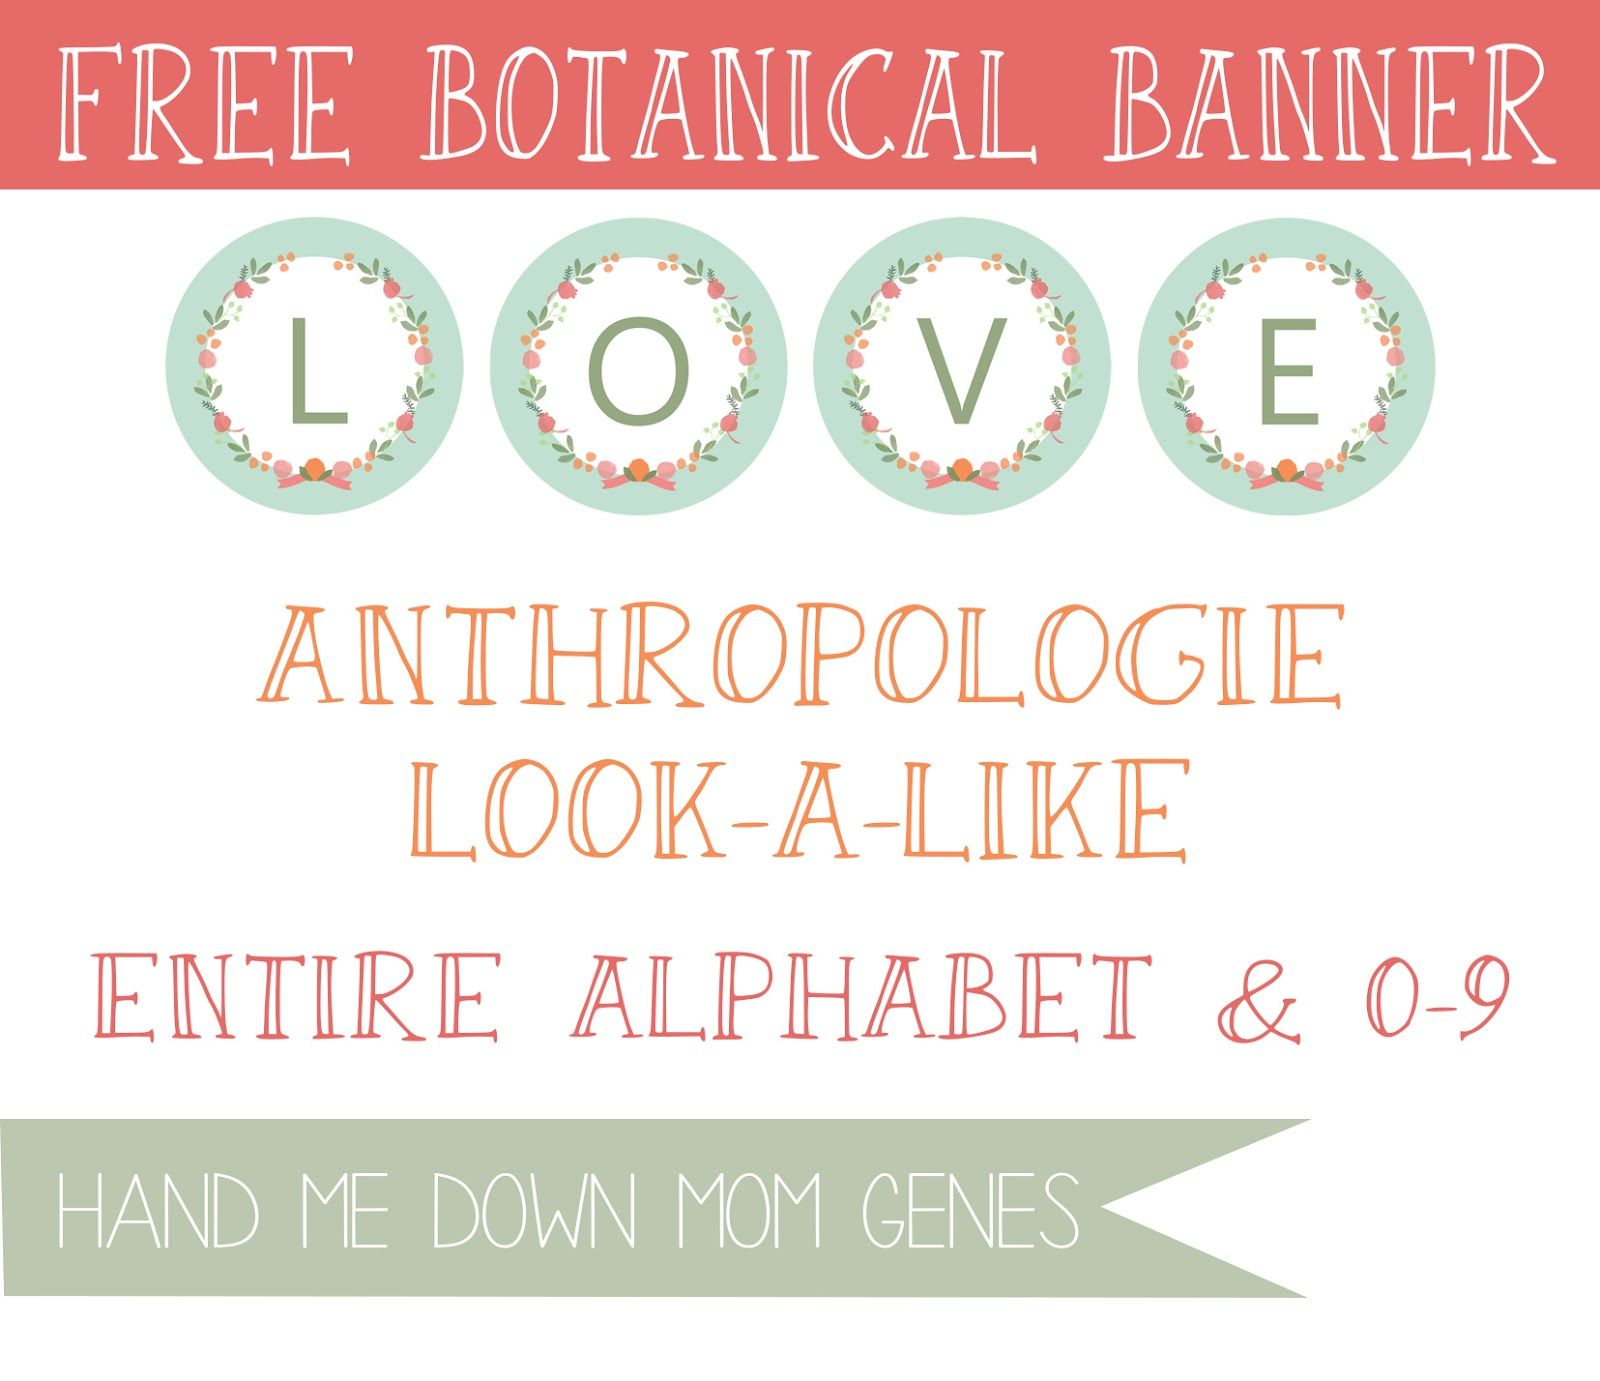 Hand Me Down Mom Genes: Anthropologie Look-a-Like: Botanical Banner